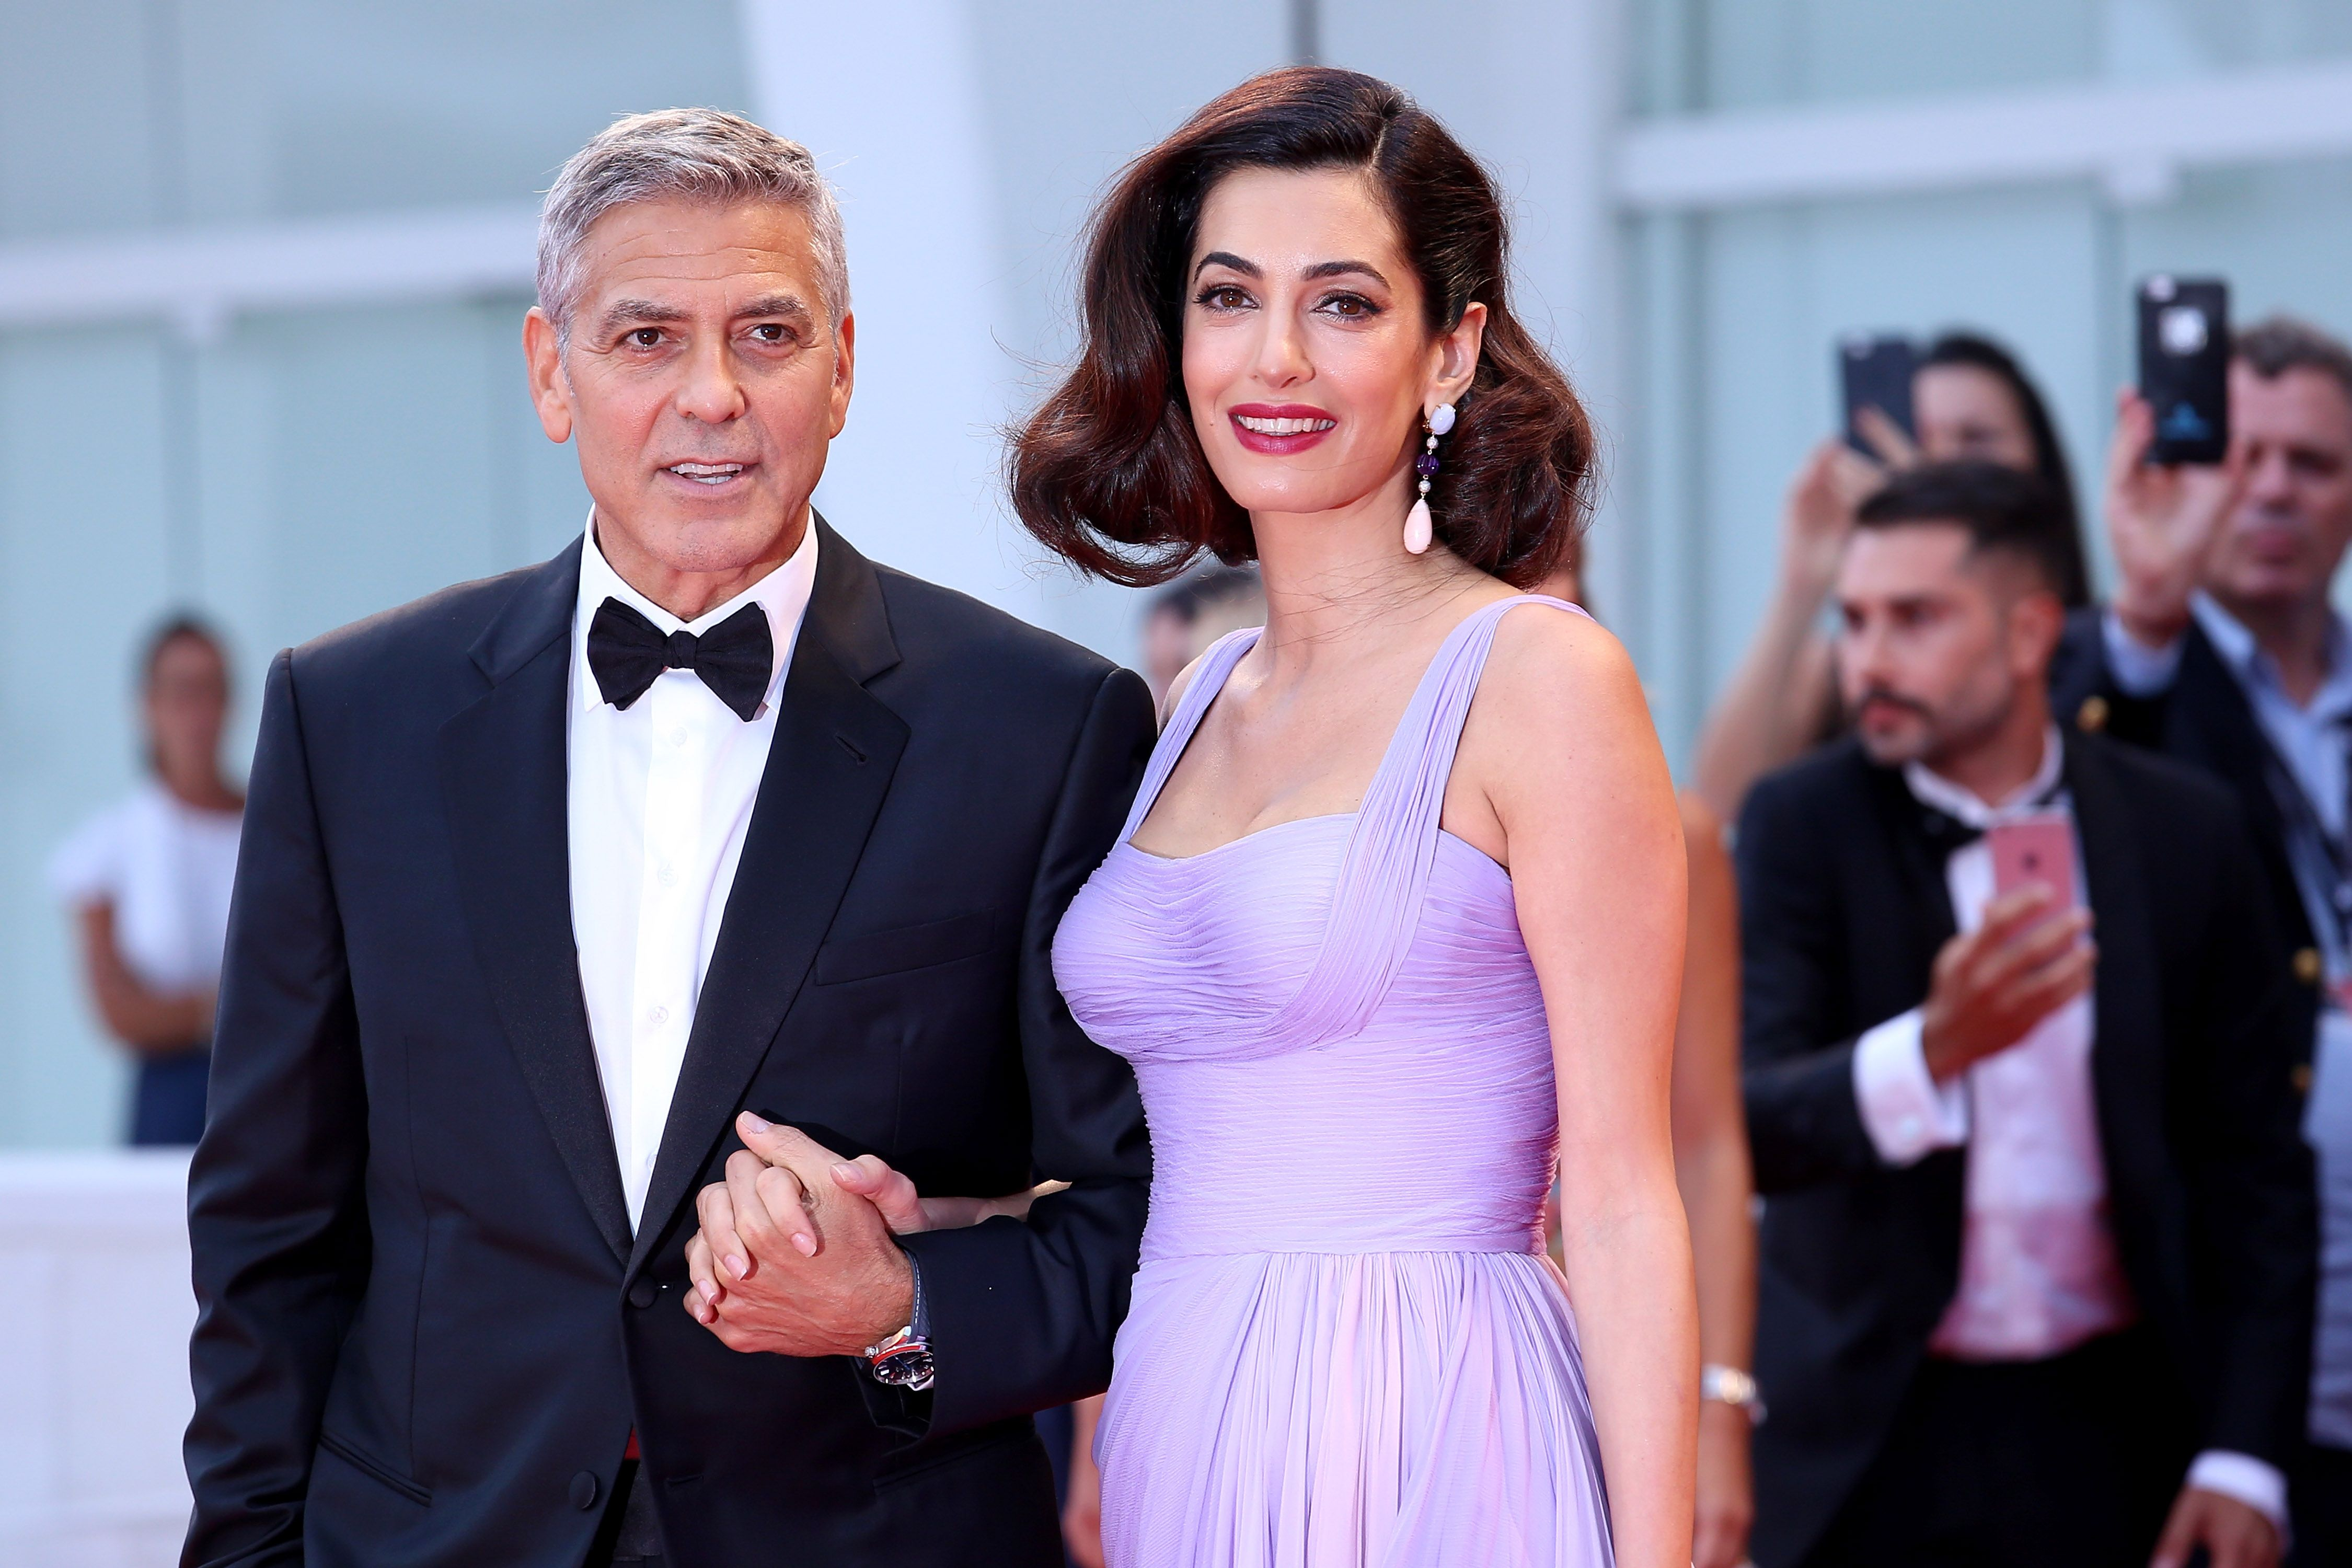 bb707a9d6cc9 Amal Clooney Hair Secrets and Hairstyles - Amal Clooney Venice Film ...